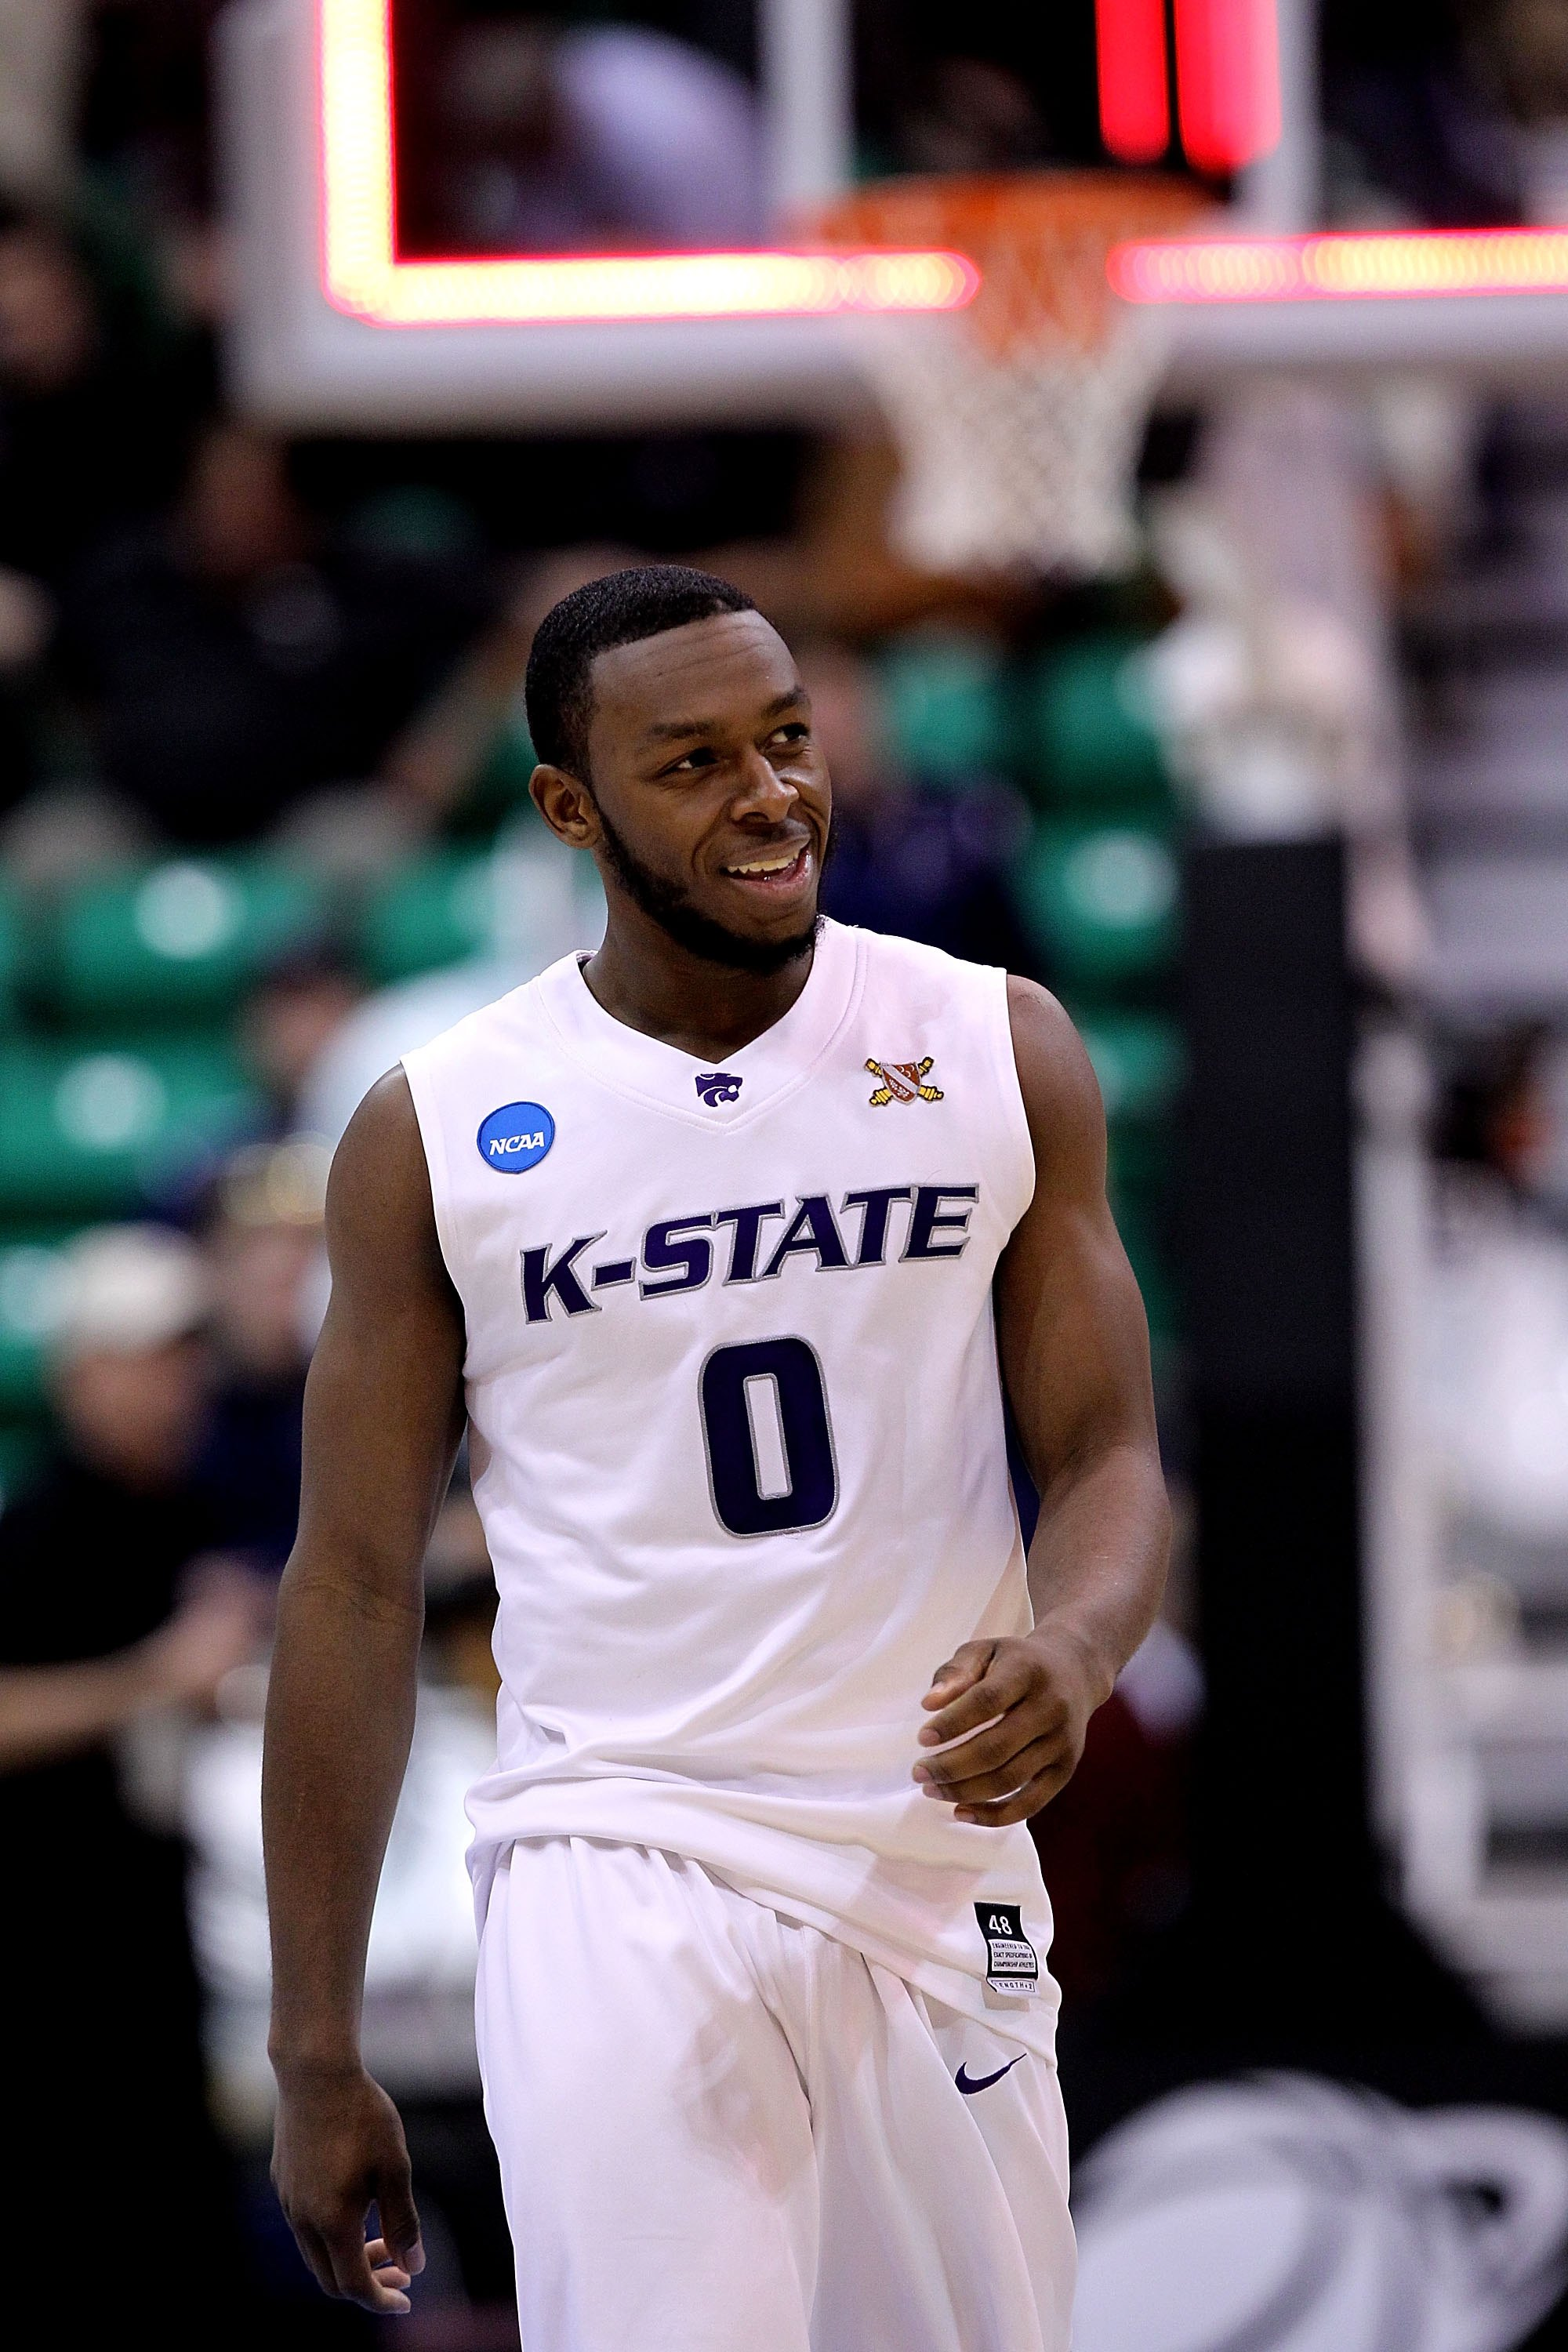 SALT LAKE CITY - MARCH 25:  Jacob Pullen #0 of the Kansas State Wildcats in action against the Xavier Musketeers during the third round of the 2010 NCAA men's basketball tournament at the Energy Solutions Arena on March 25, 2010 in Salt Lake City, Utah.